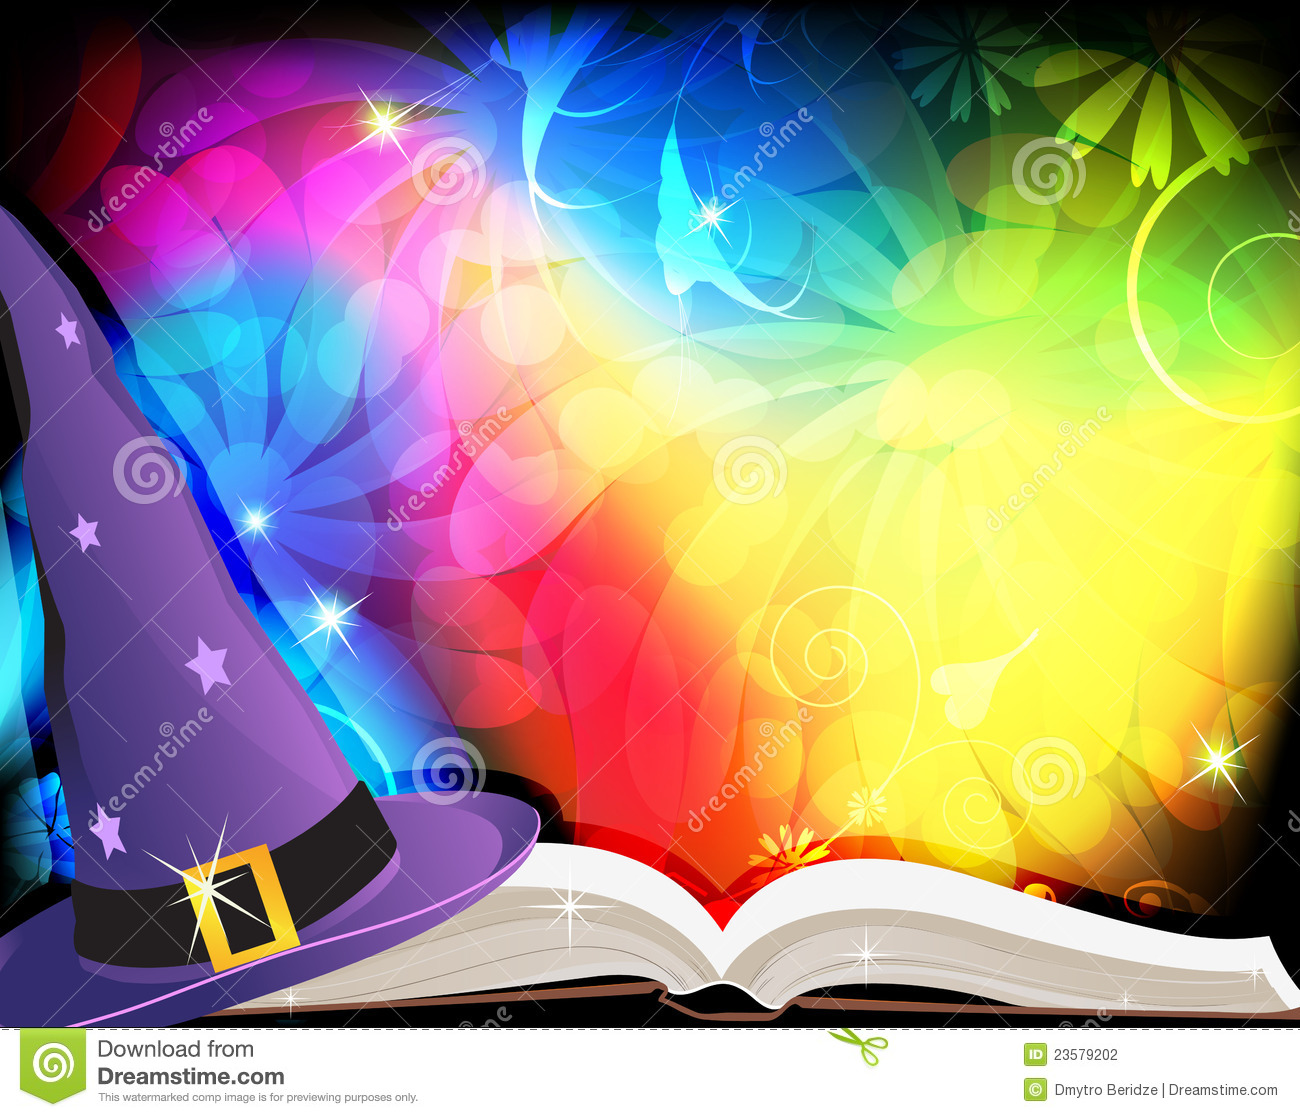 Witch hat and spell book on an abstract fairytale background.